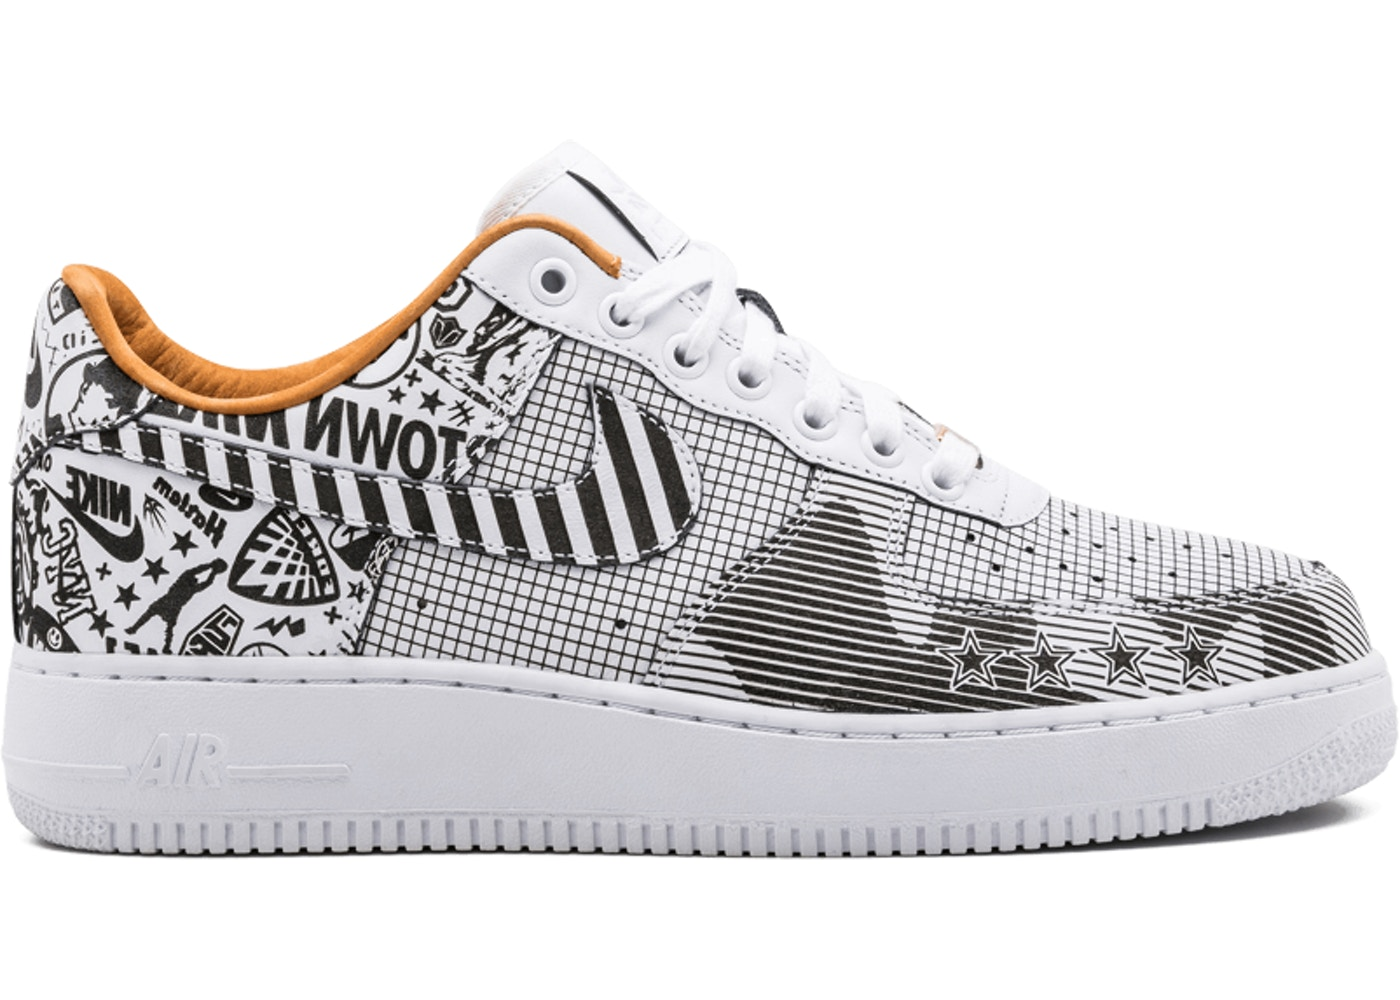 premium selection df64e dd0ff Air Force 1 Low NYC SOHO Exclusive Option 2